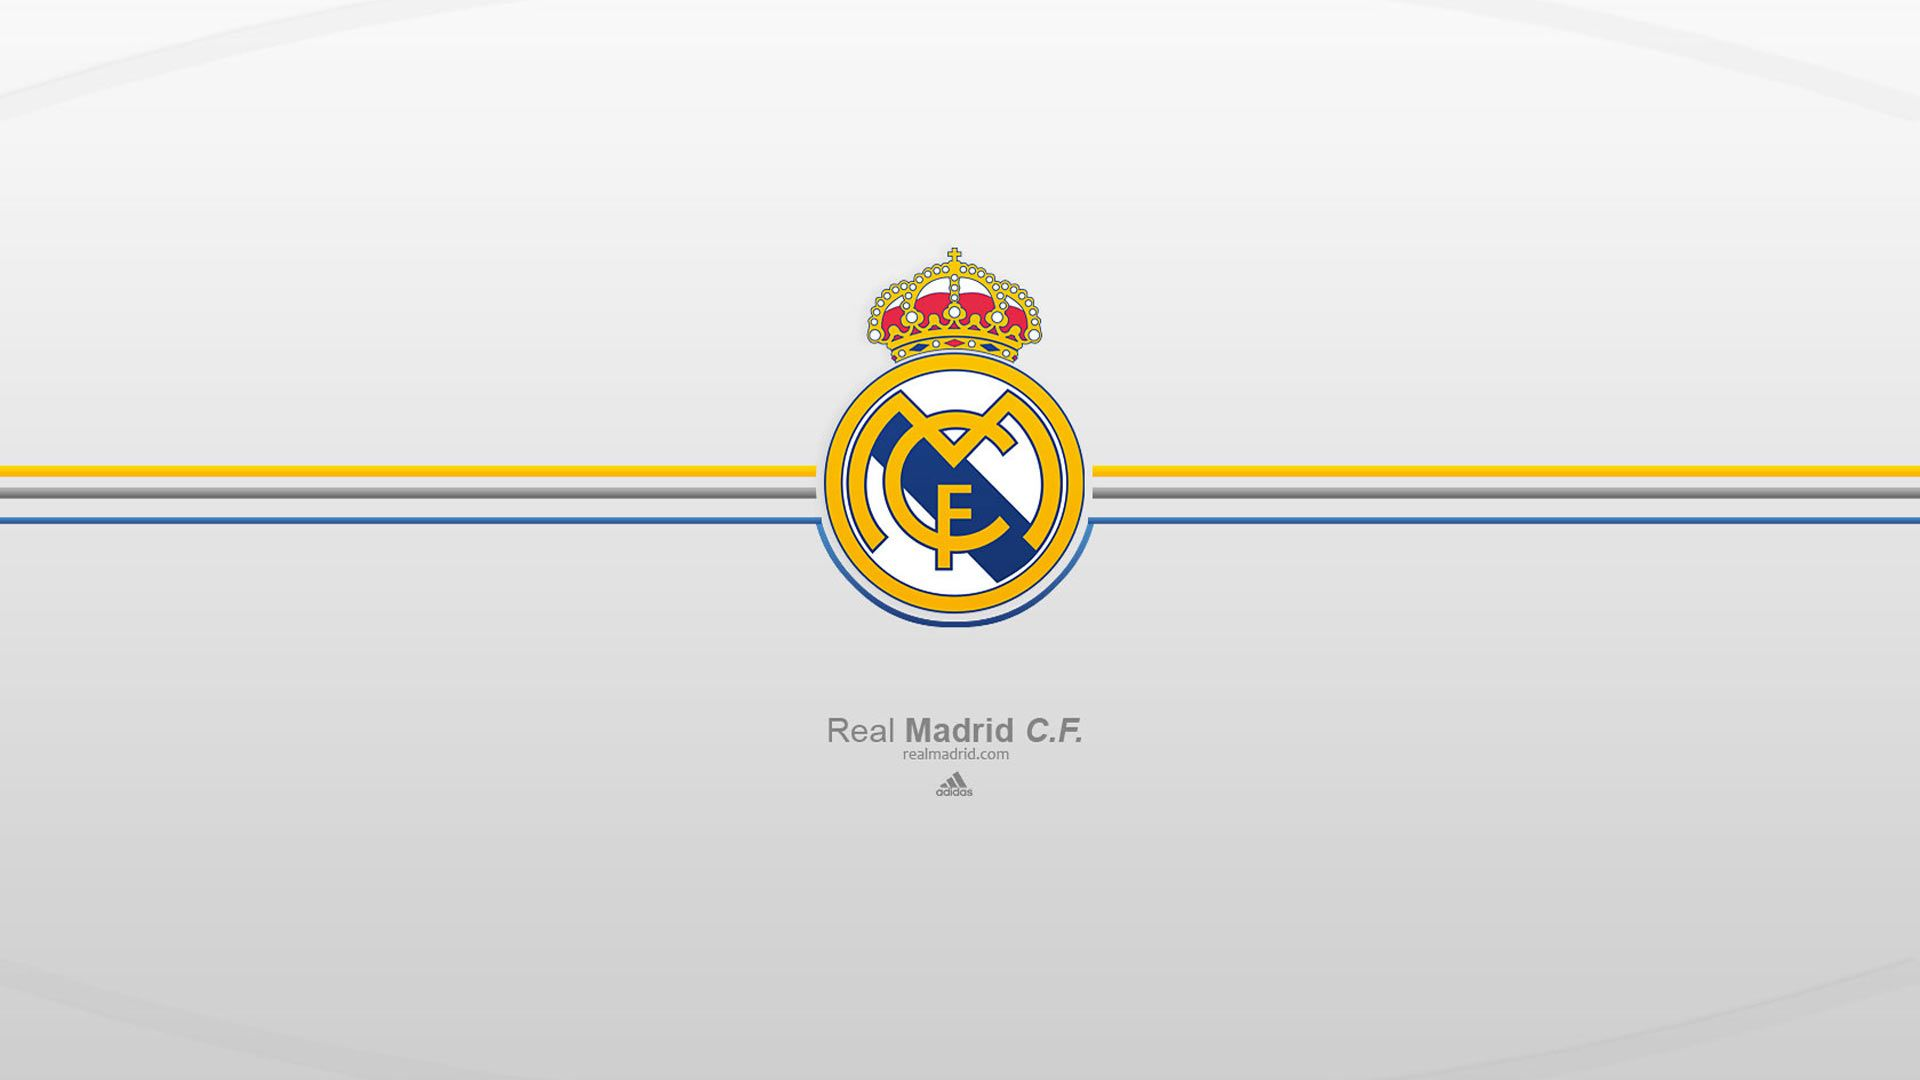 Real madrid logo clipart graphic royalty free library Real madrid clipart for pc - ClipartFox graphic royalty free library